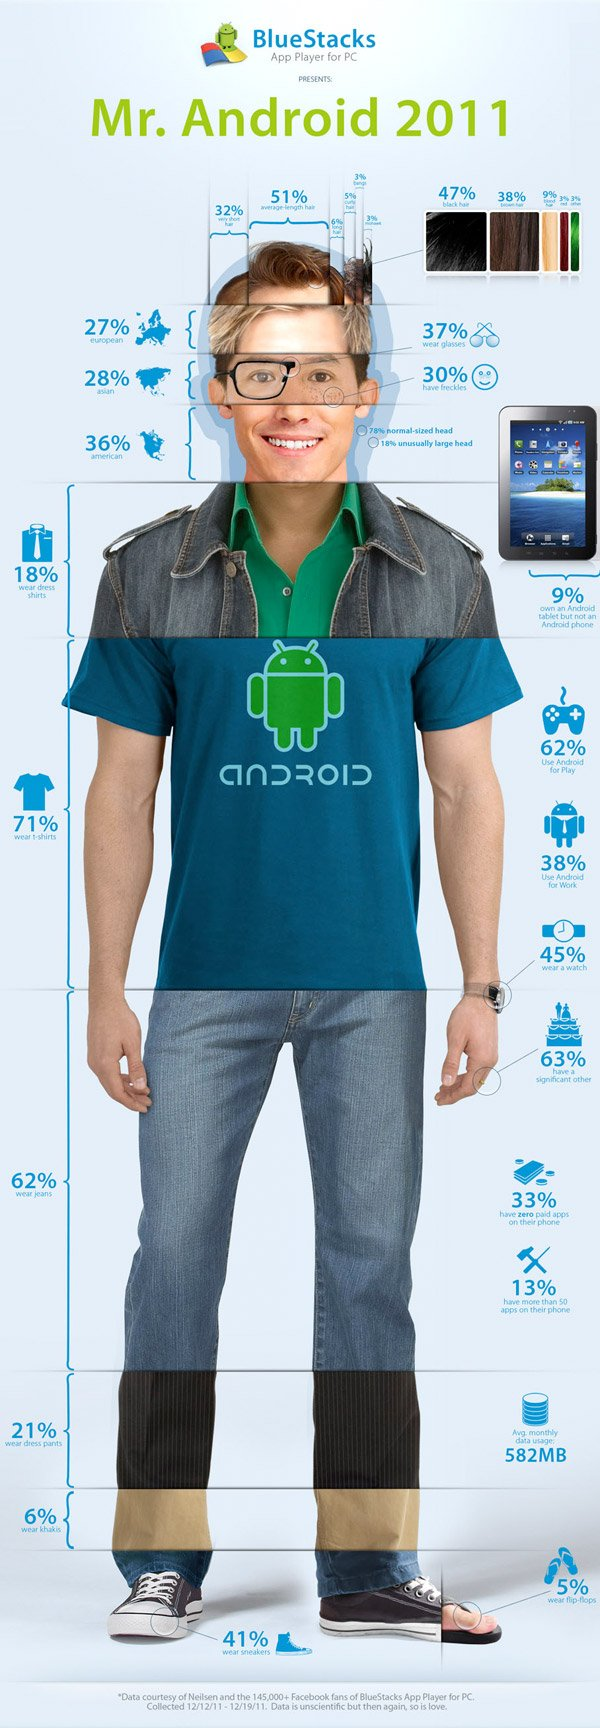 mr_android_2011_small